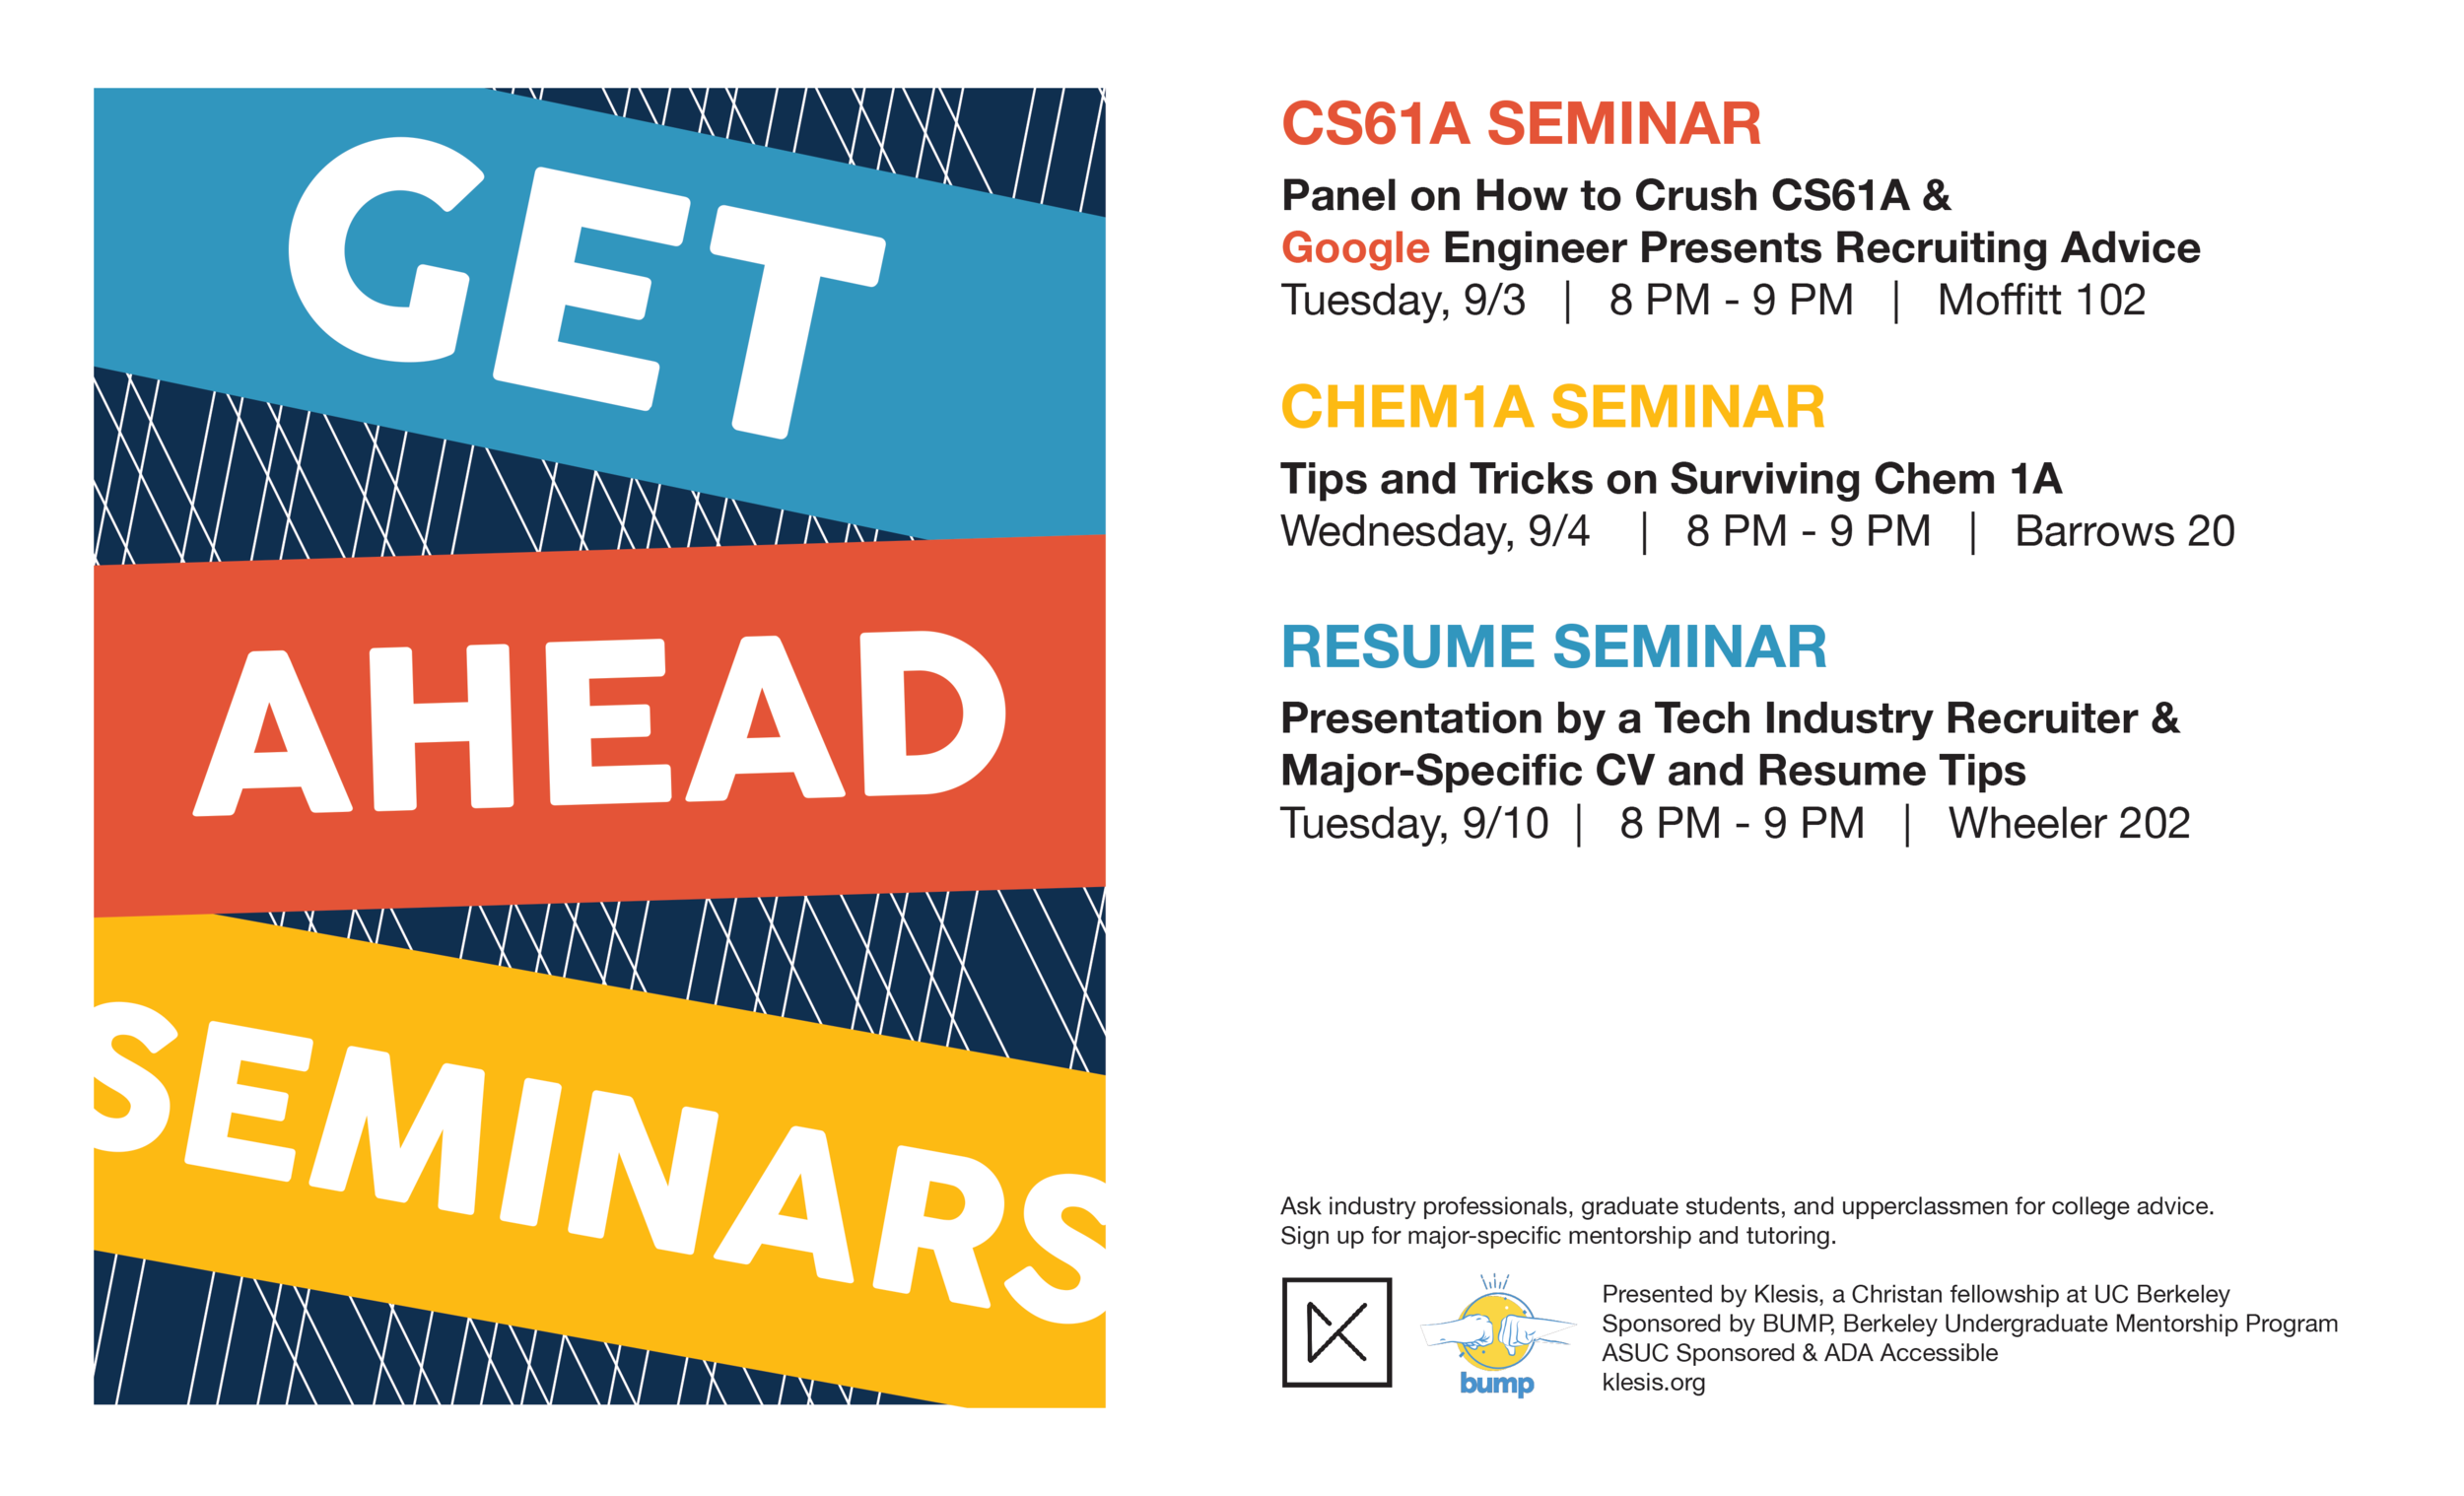 get ahead seminar klesis uc berkeley campus event open to all students and incoming freshman